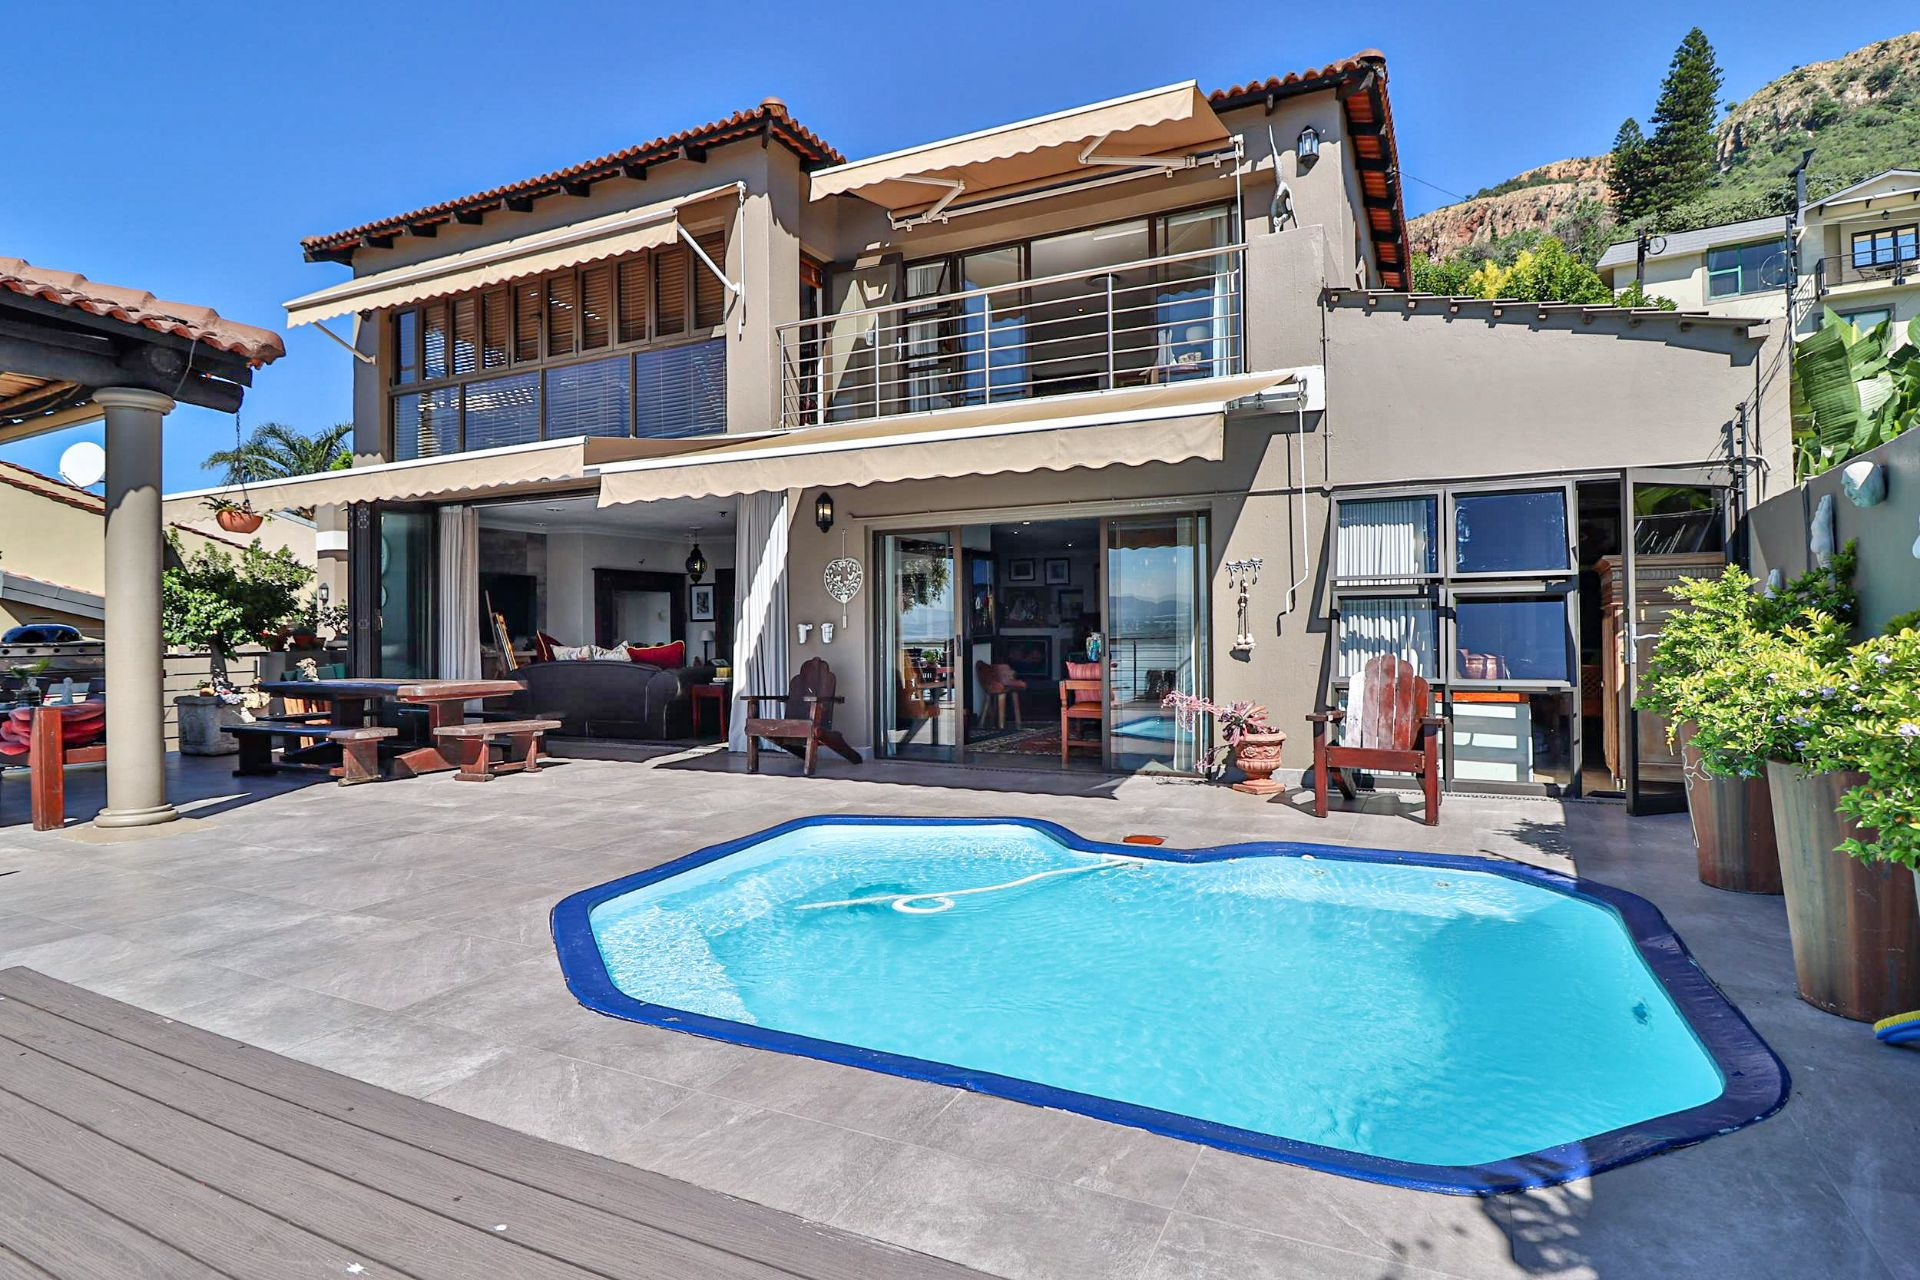 House in Kosmos Village - Entertainment patio is complete with a splash pool